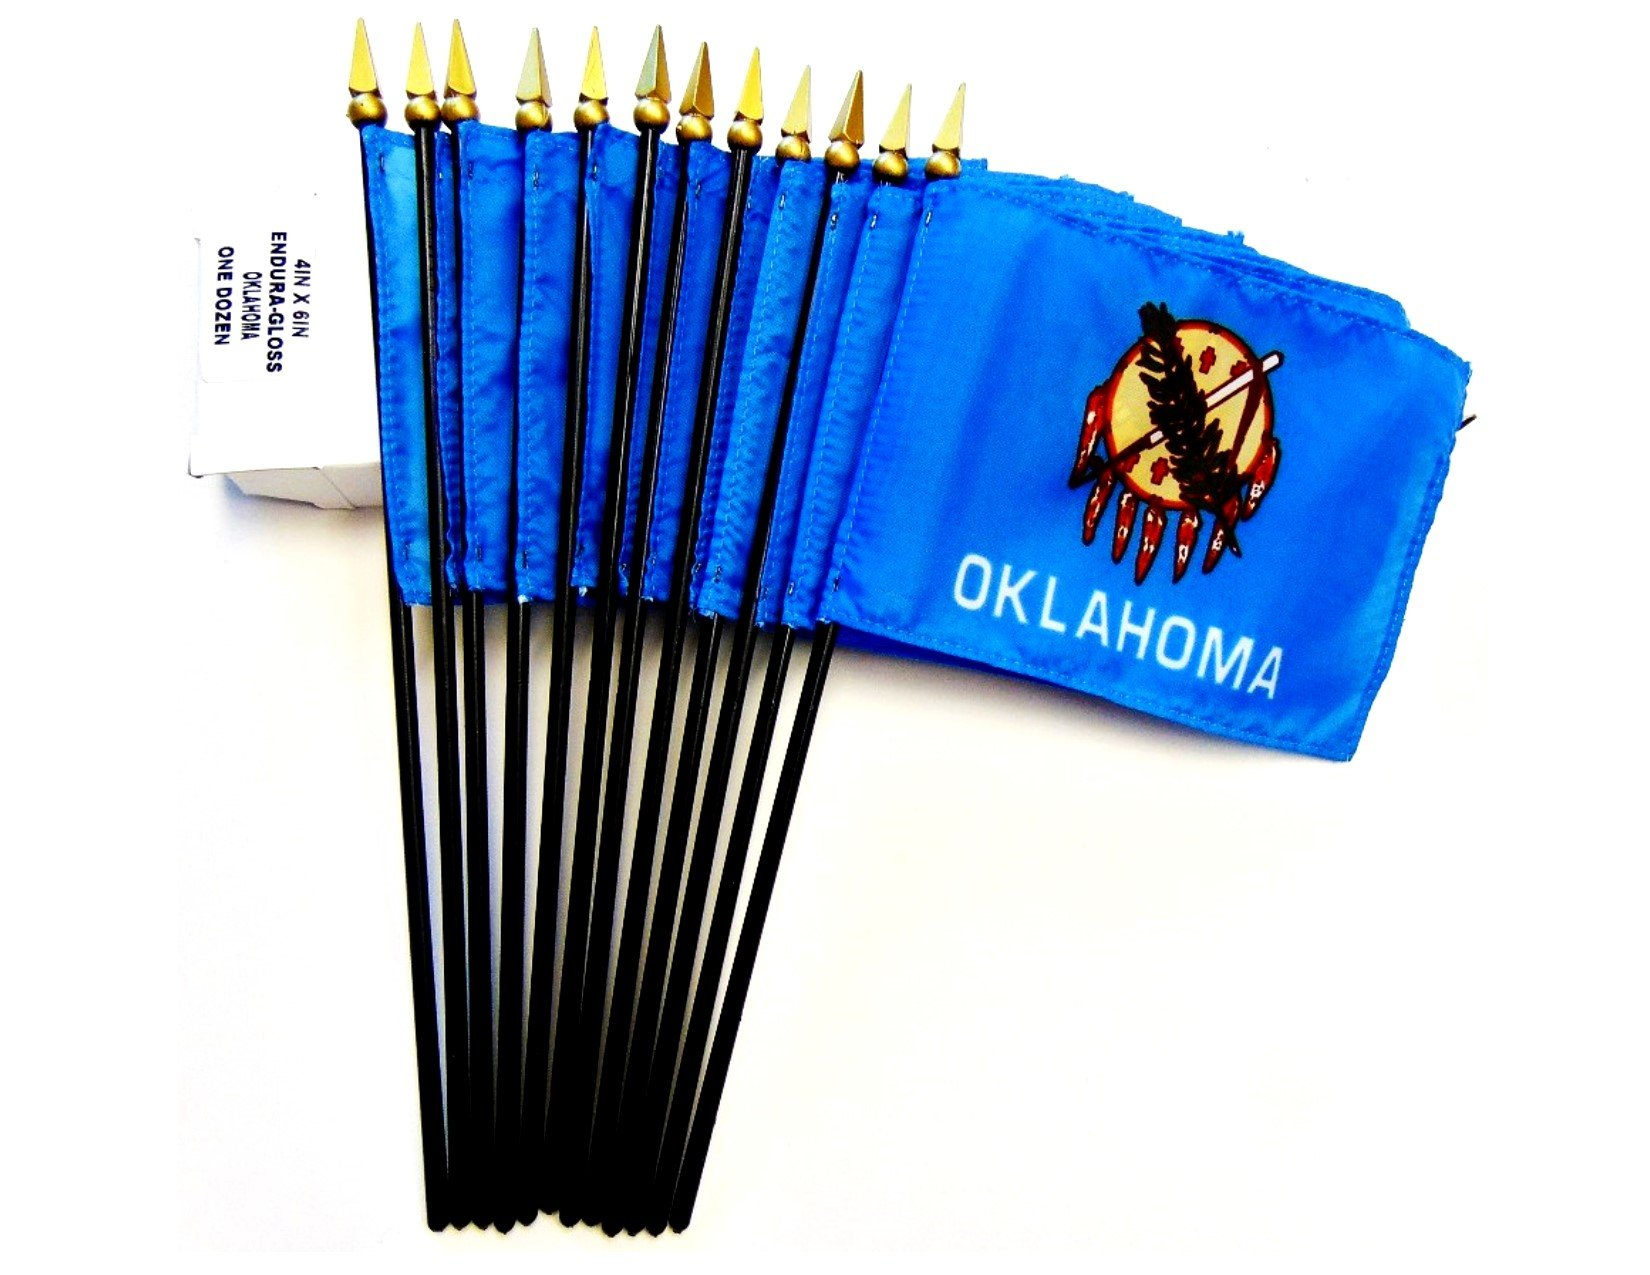 MADE IN USA!! Box of 12 Oklahoma 4''x6'' Miniature Desk & Table Flags; 12 American Made Small Mini Oklahoma State Flags in a Custom Made Cardboard Box Specifically Made for These Flags